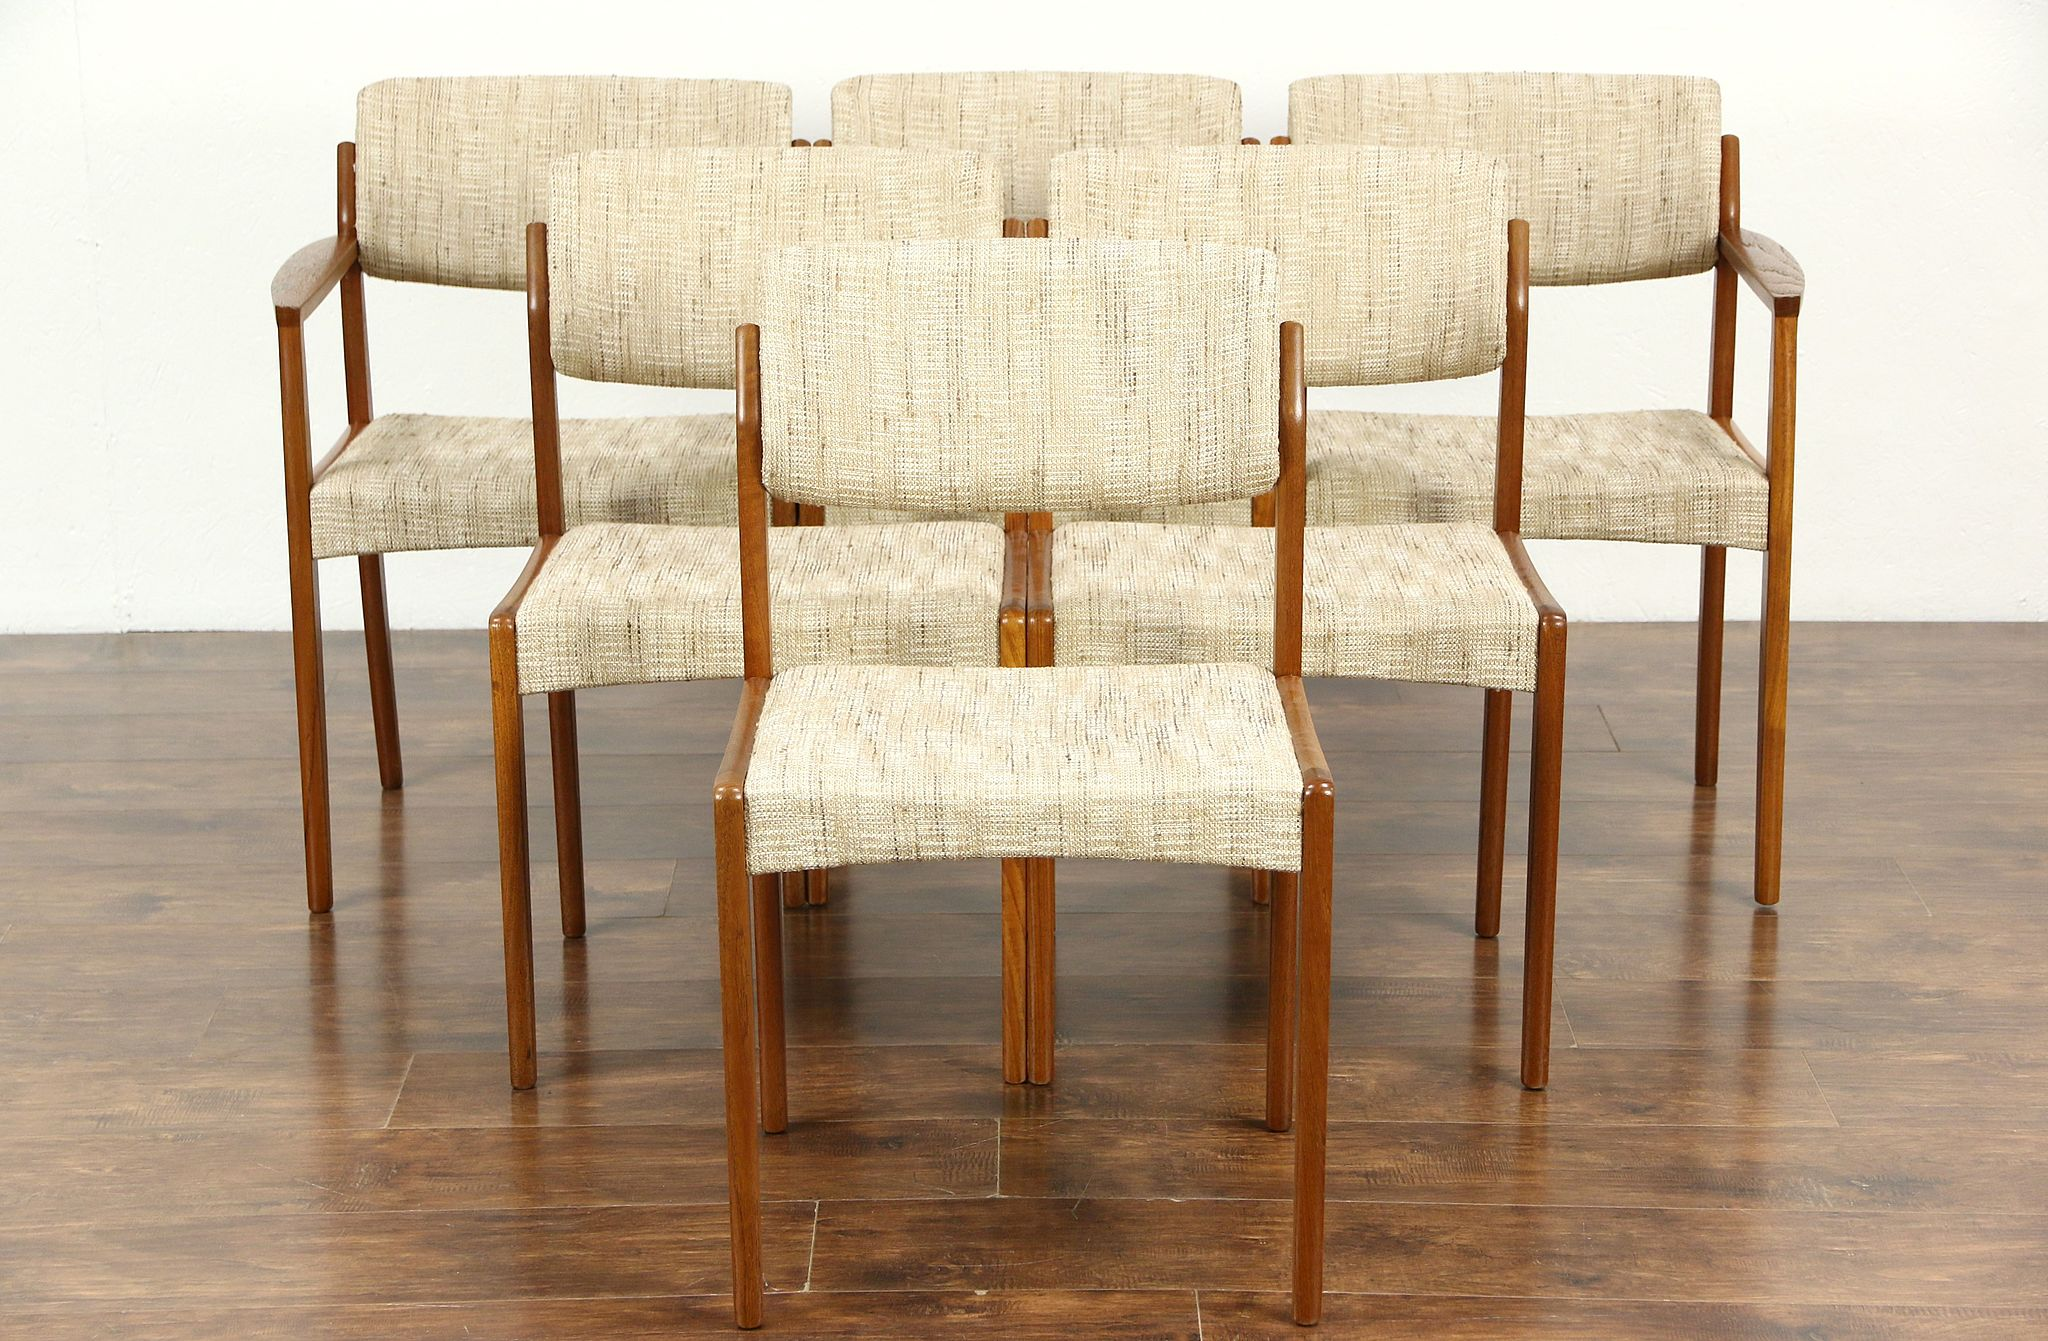 Admirable Set Of 6 Midcentury Danish Modern Teak Dining Chairs Signed Bramin Denmark Bralicious Painted Fabric Chair Ideas Braliciousco